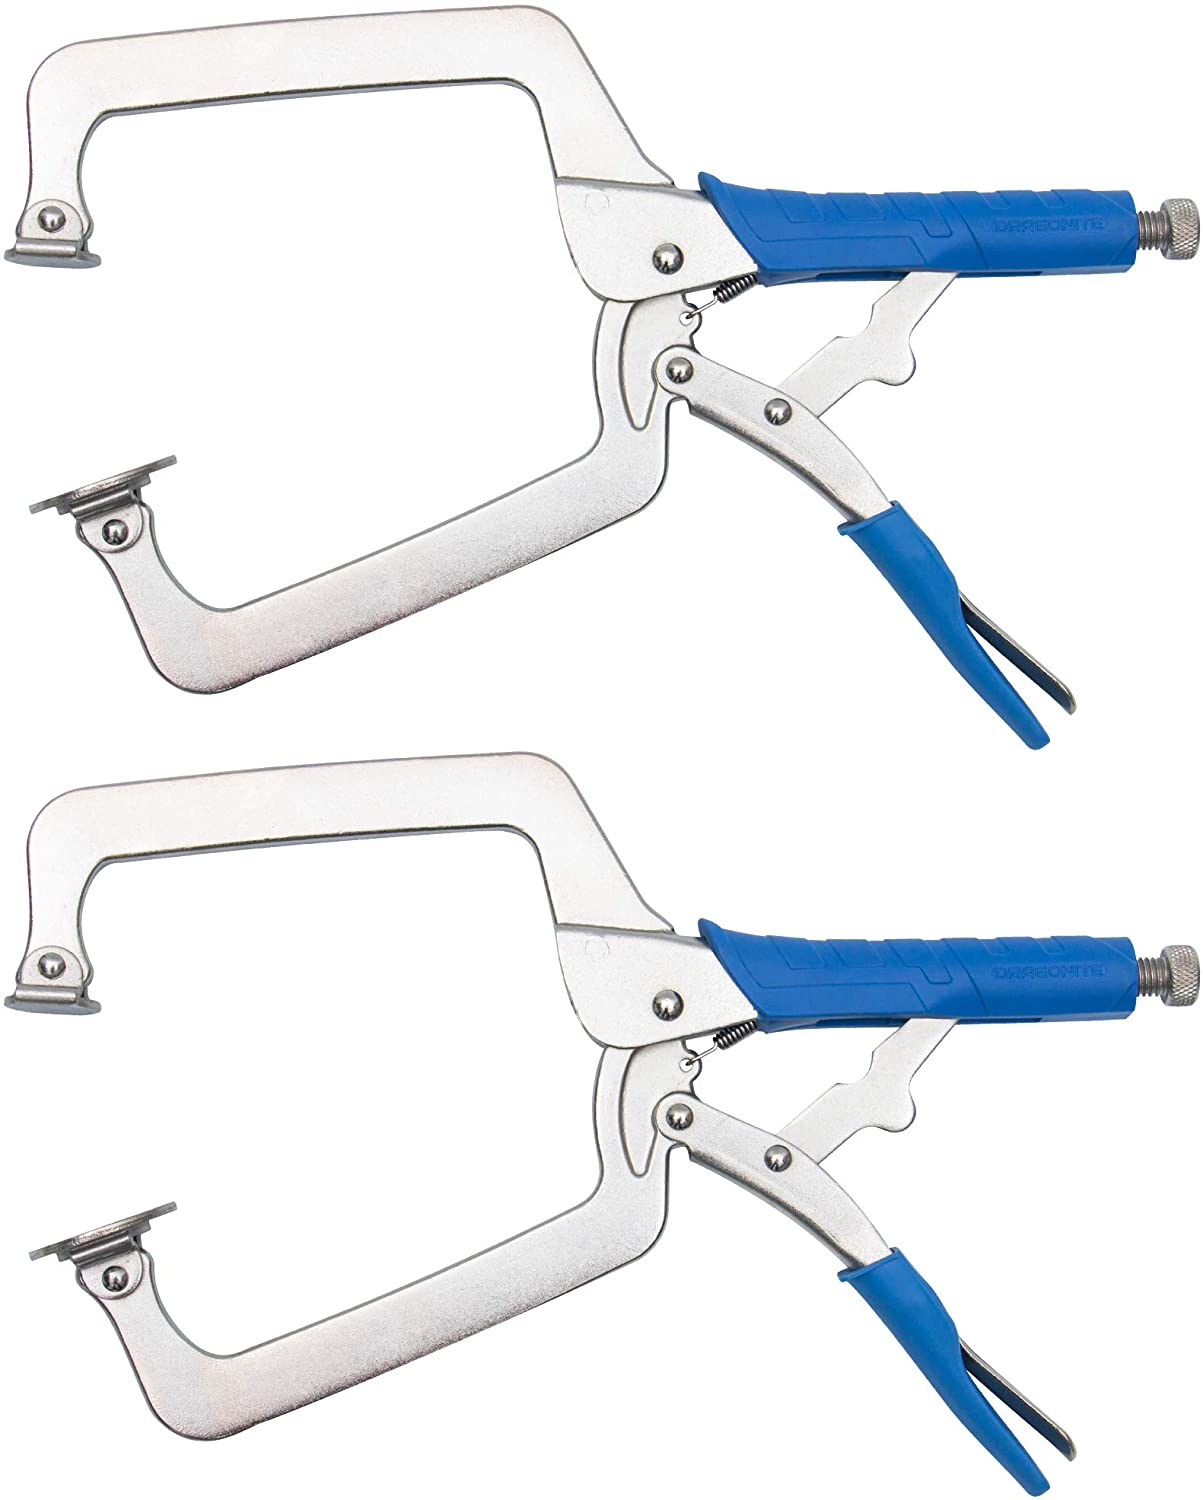 DRAGONITE Heavy Duty Austin Mall C SEAL limited product Clamp Vise Swiv Grip With Pliers Locking